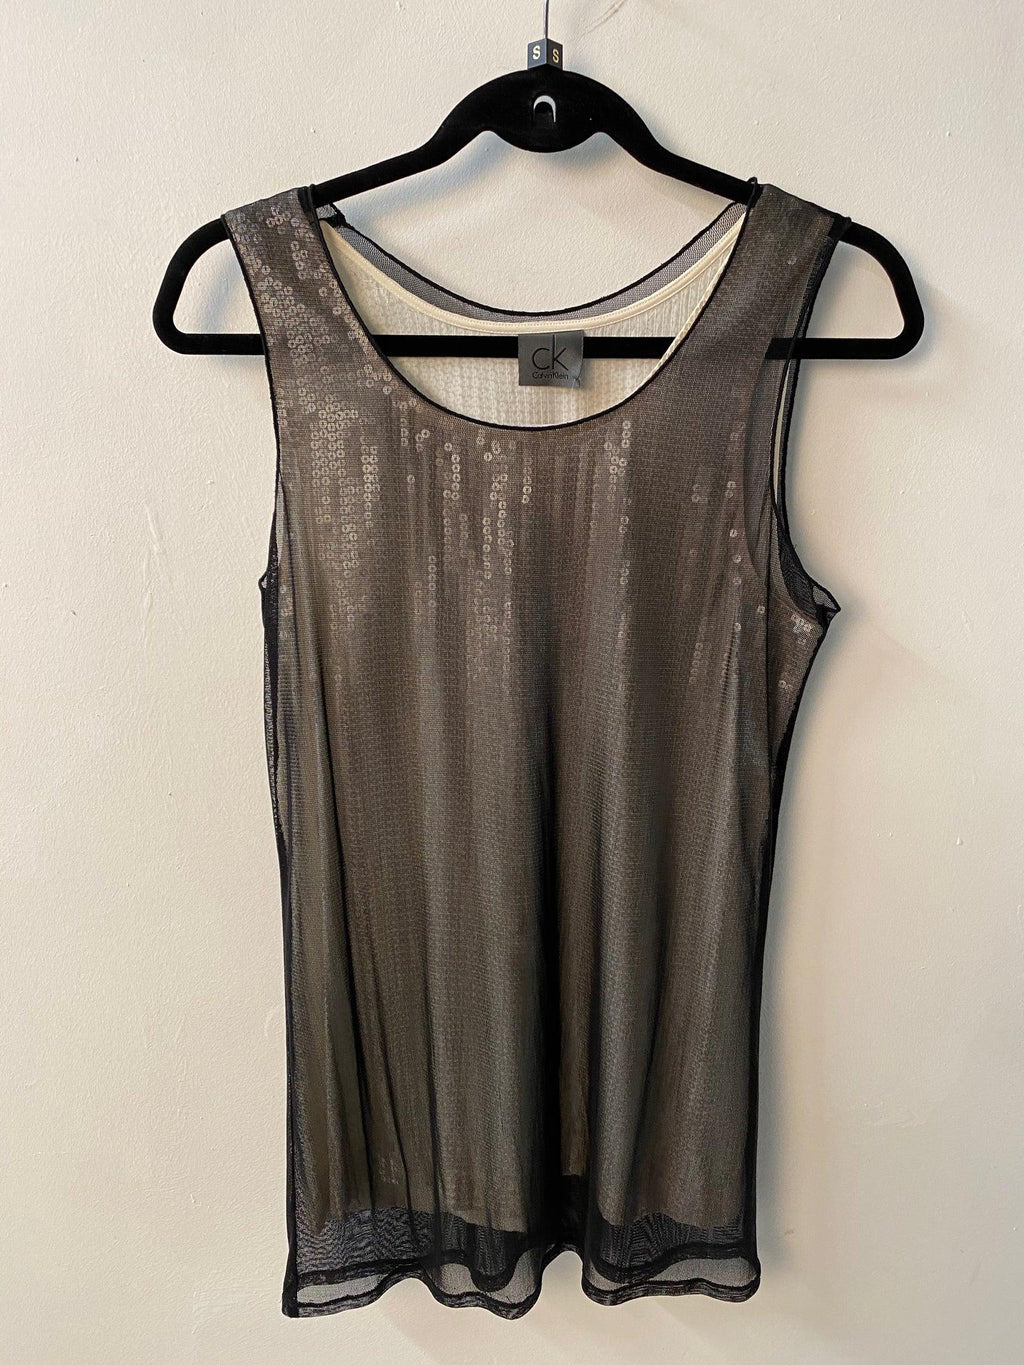 Calvin Klein Grey and Black Silk Sequin Top Size 44